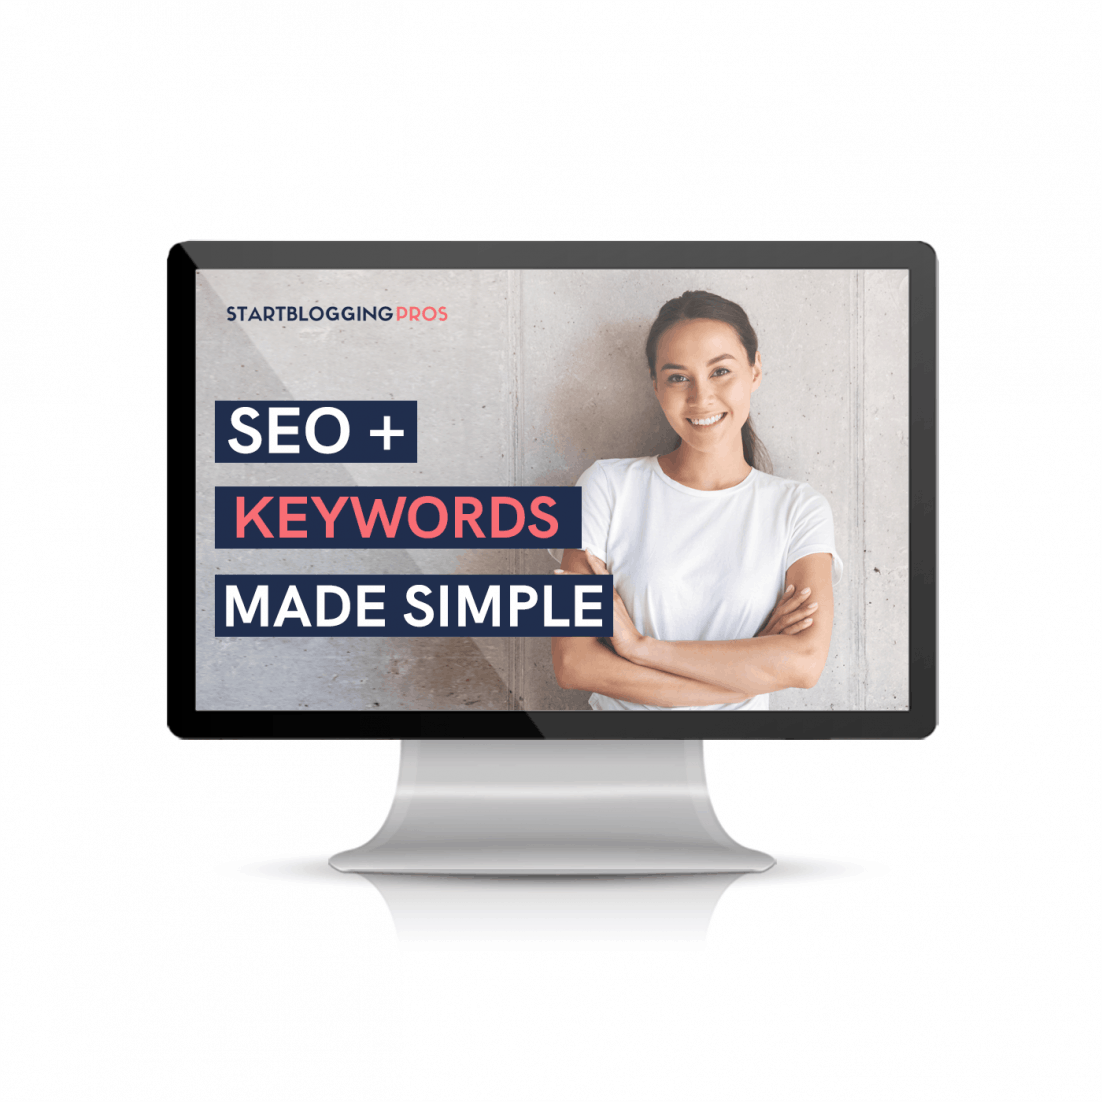 Write for us blogs accepting guest posts SEO-course-free-seo-course-seo-made-simple-keyword-research-training-how-to-do-keyword-research StrtBlogggingPros HerPaperRoute.com